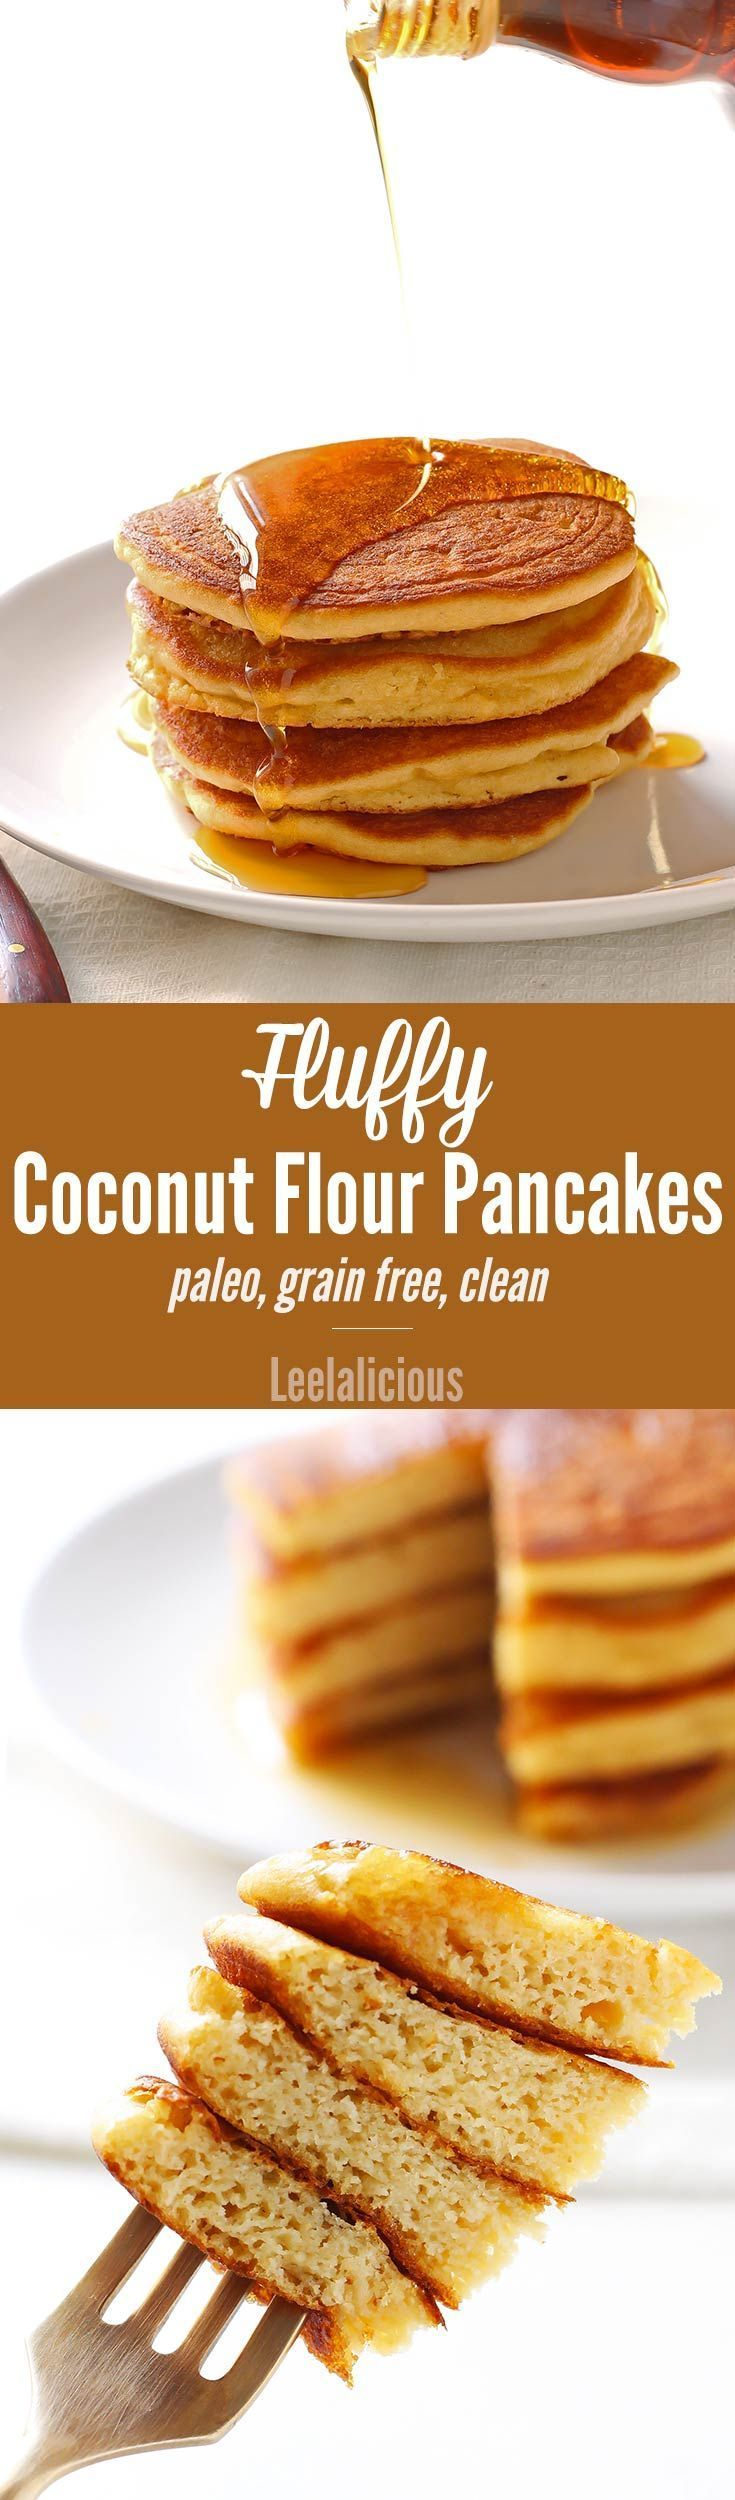 this clean eating recipe for fluffy coconut flour pancakes makes a delicious breakfast treat. Black Bedroom Furniture Sets. Home Design Ideas